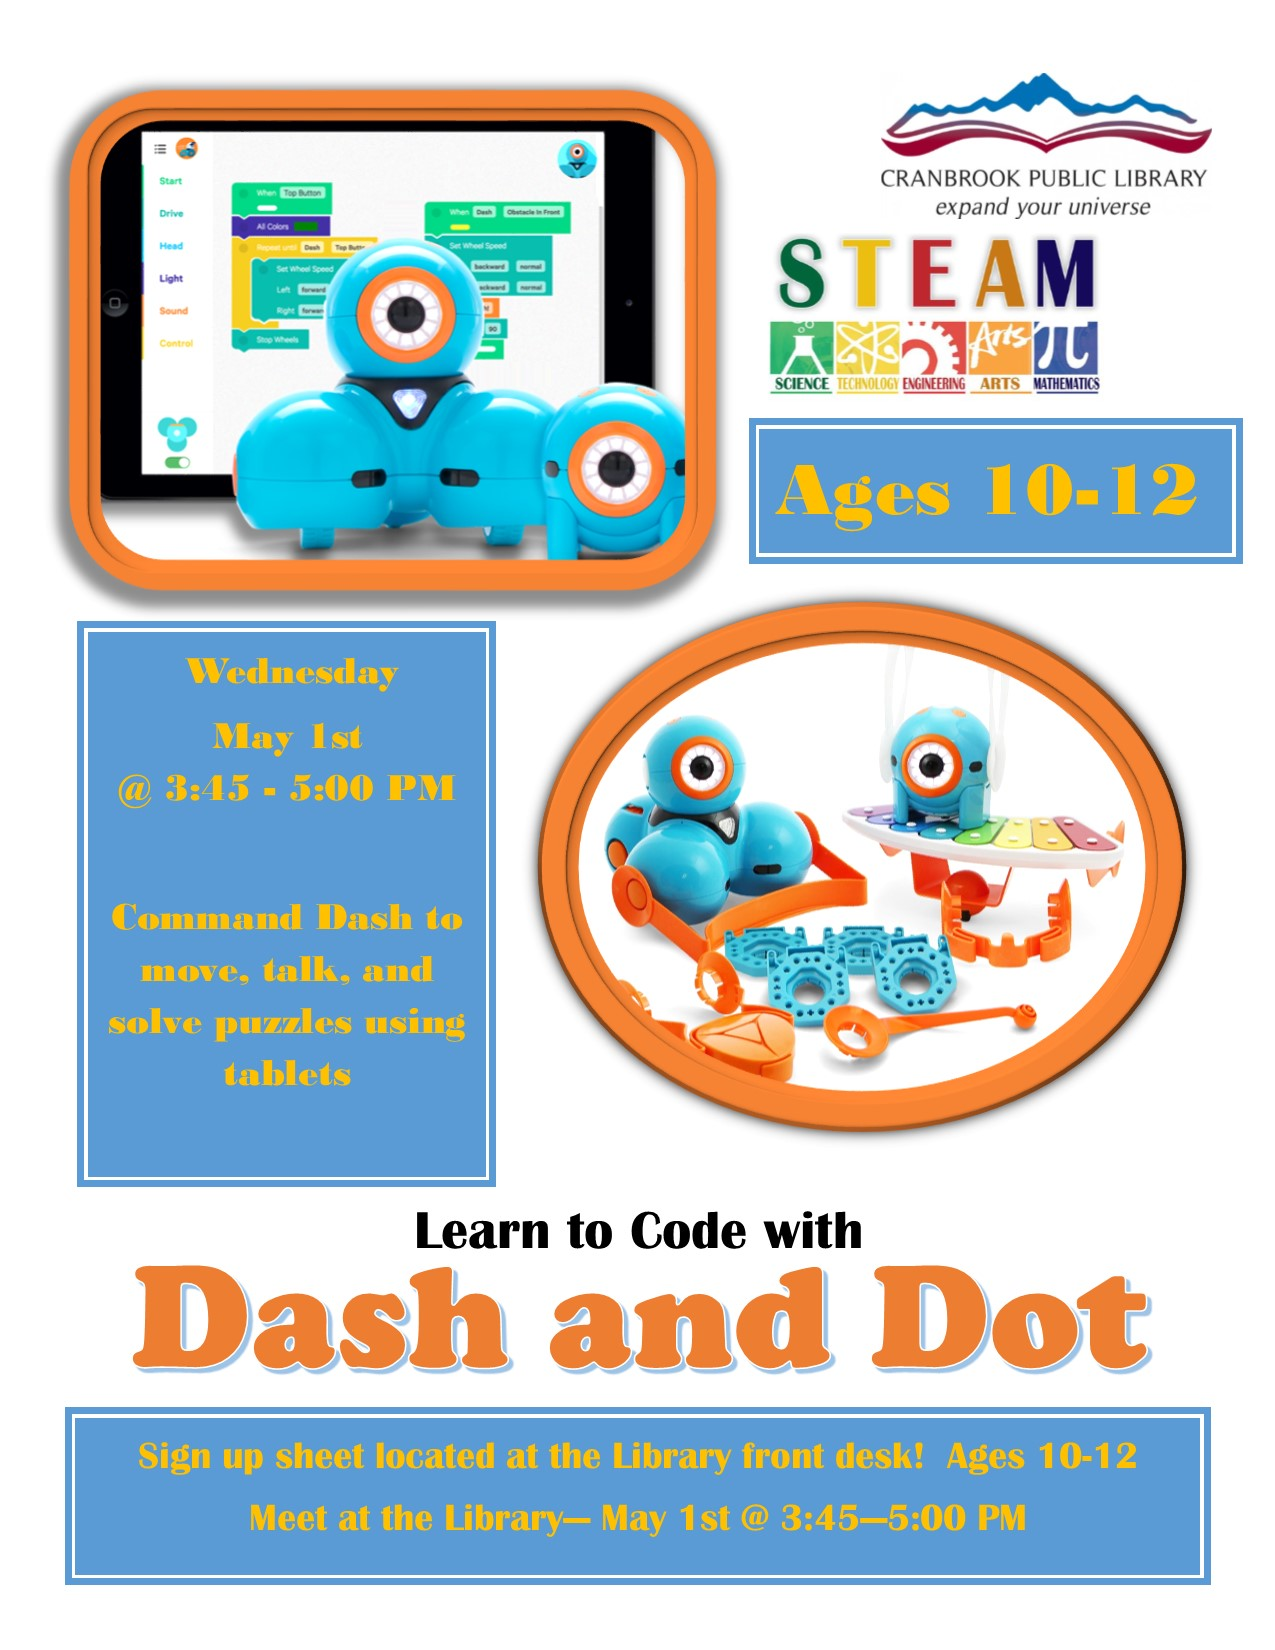 Learn to Code with: Dash and Dot (Ages 10-12) @ Cranbrook Public Library